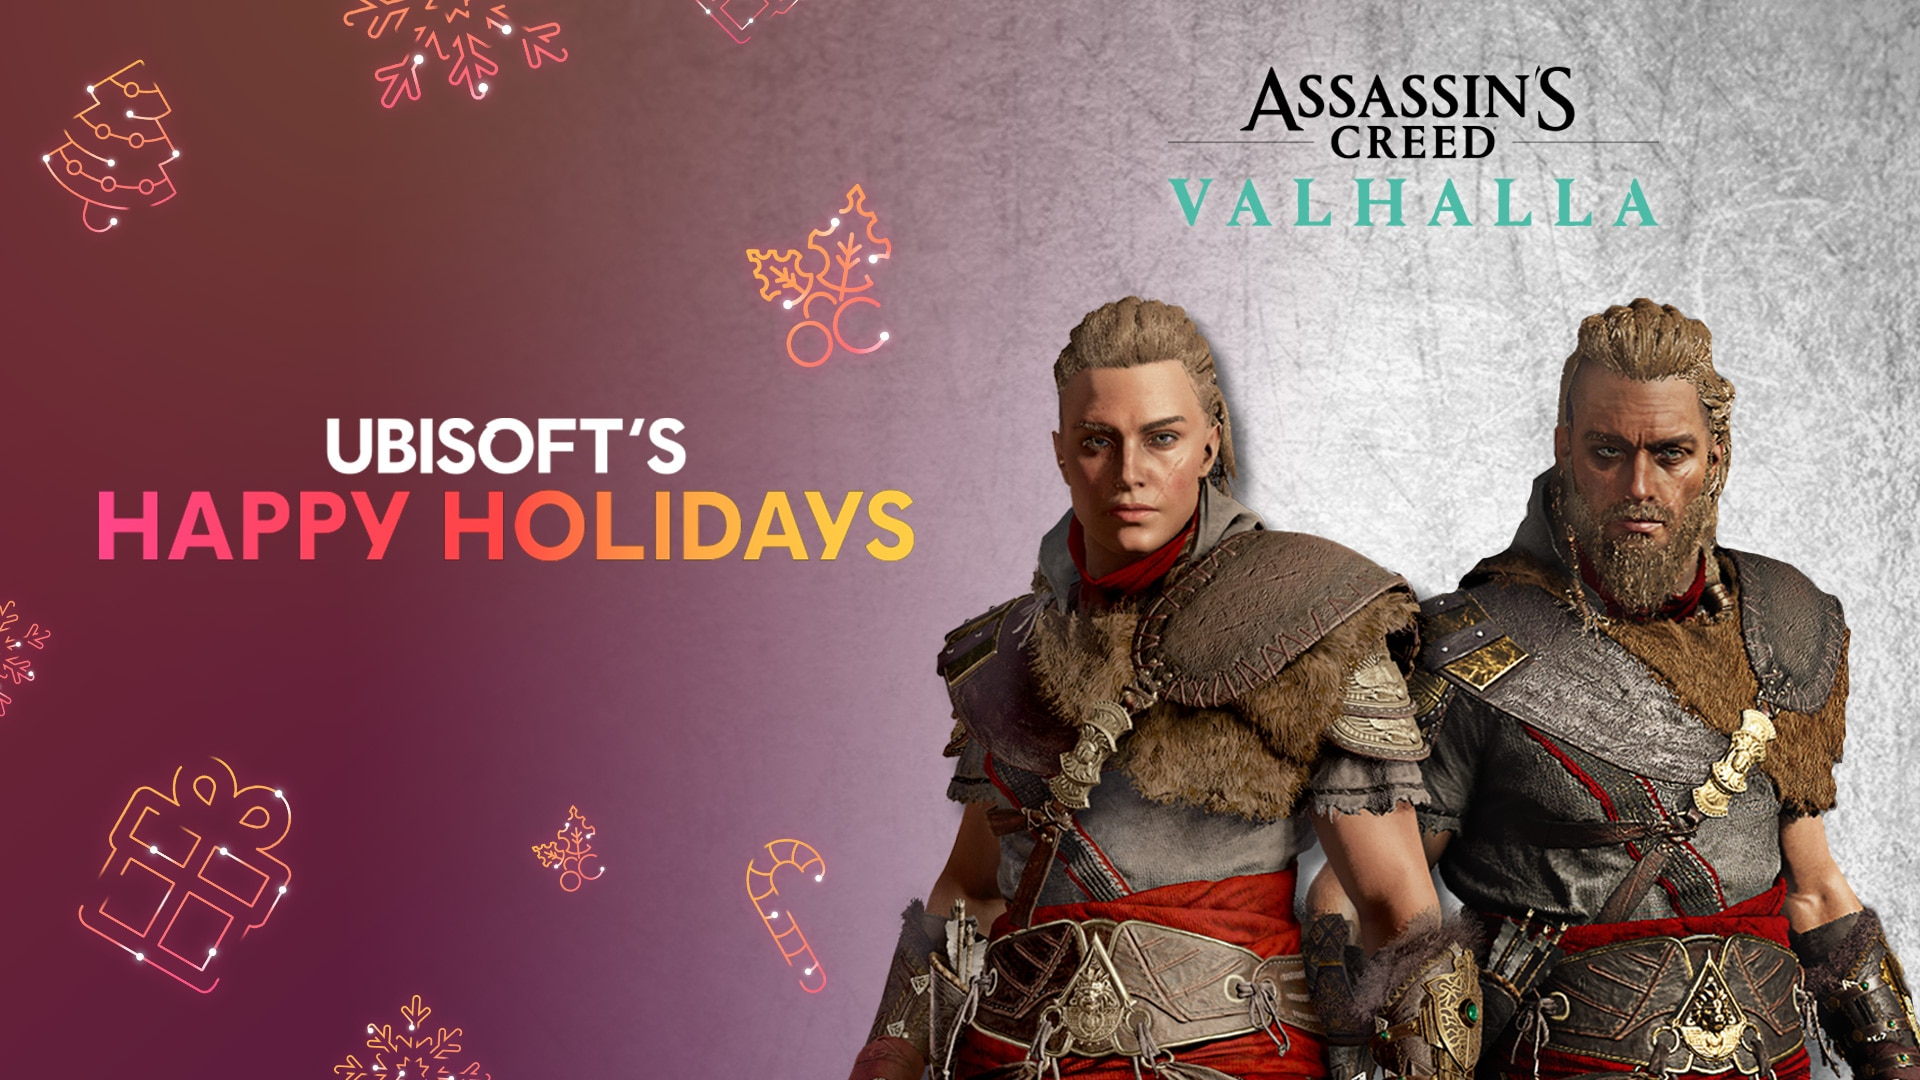 Ubisoft's Happy Holidays - Get your free Rewards for Assassin's Creed Valhalla